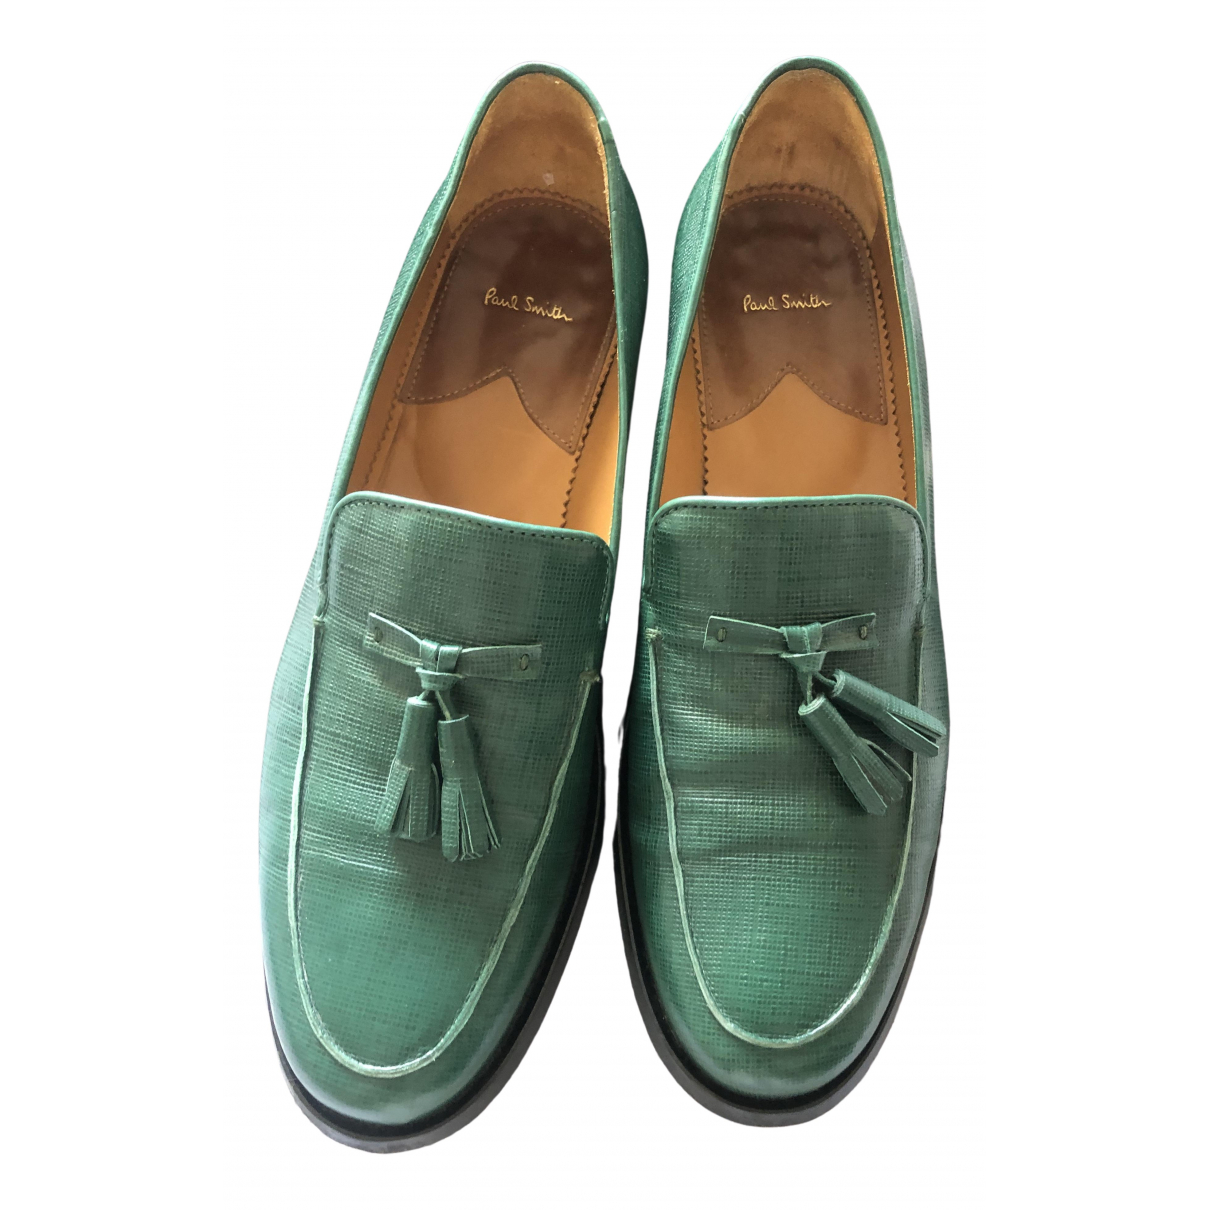 Paul Smith \N Green Leather Flats for Women 39 EU